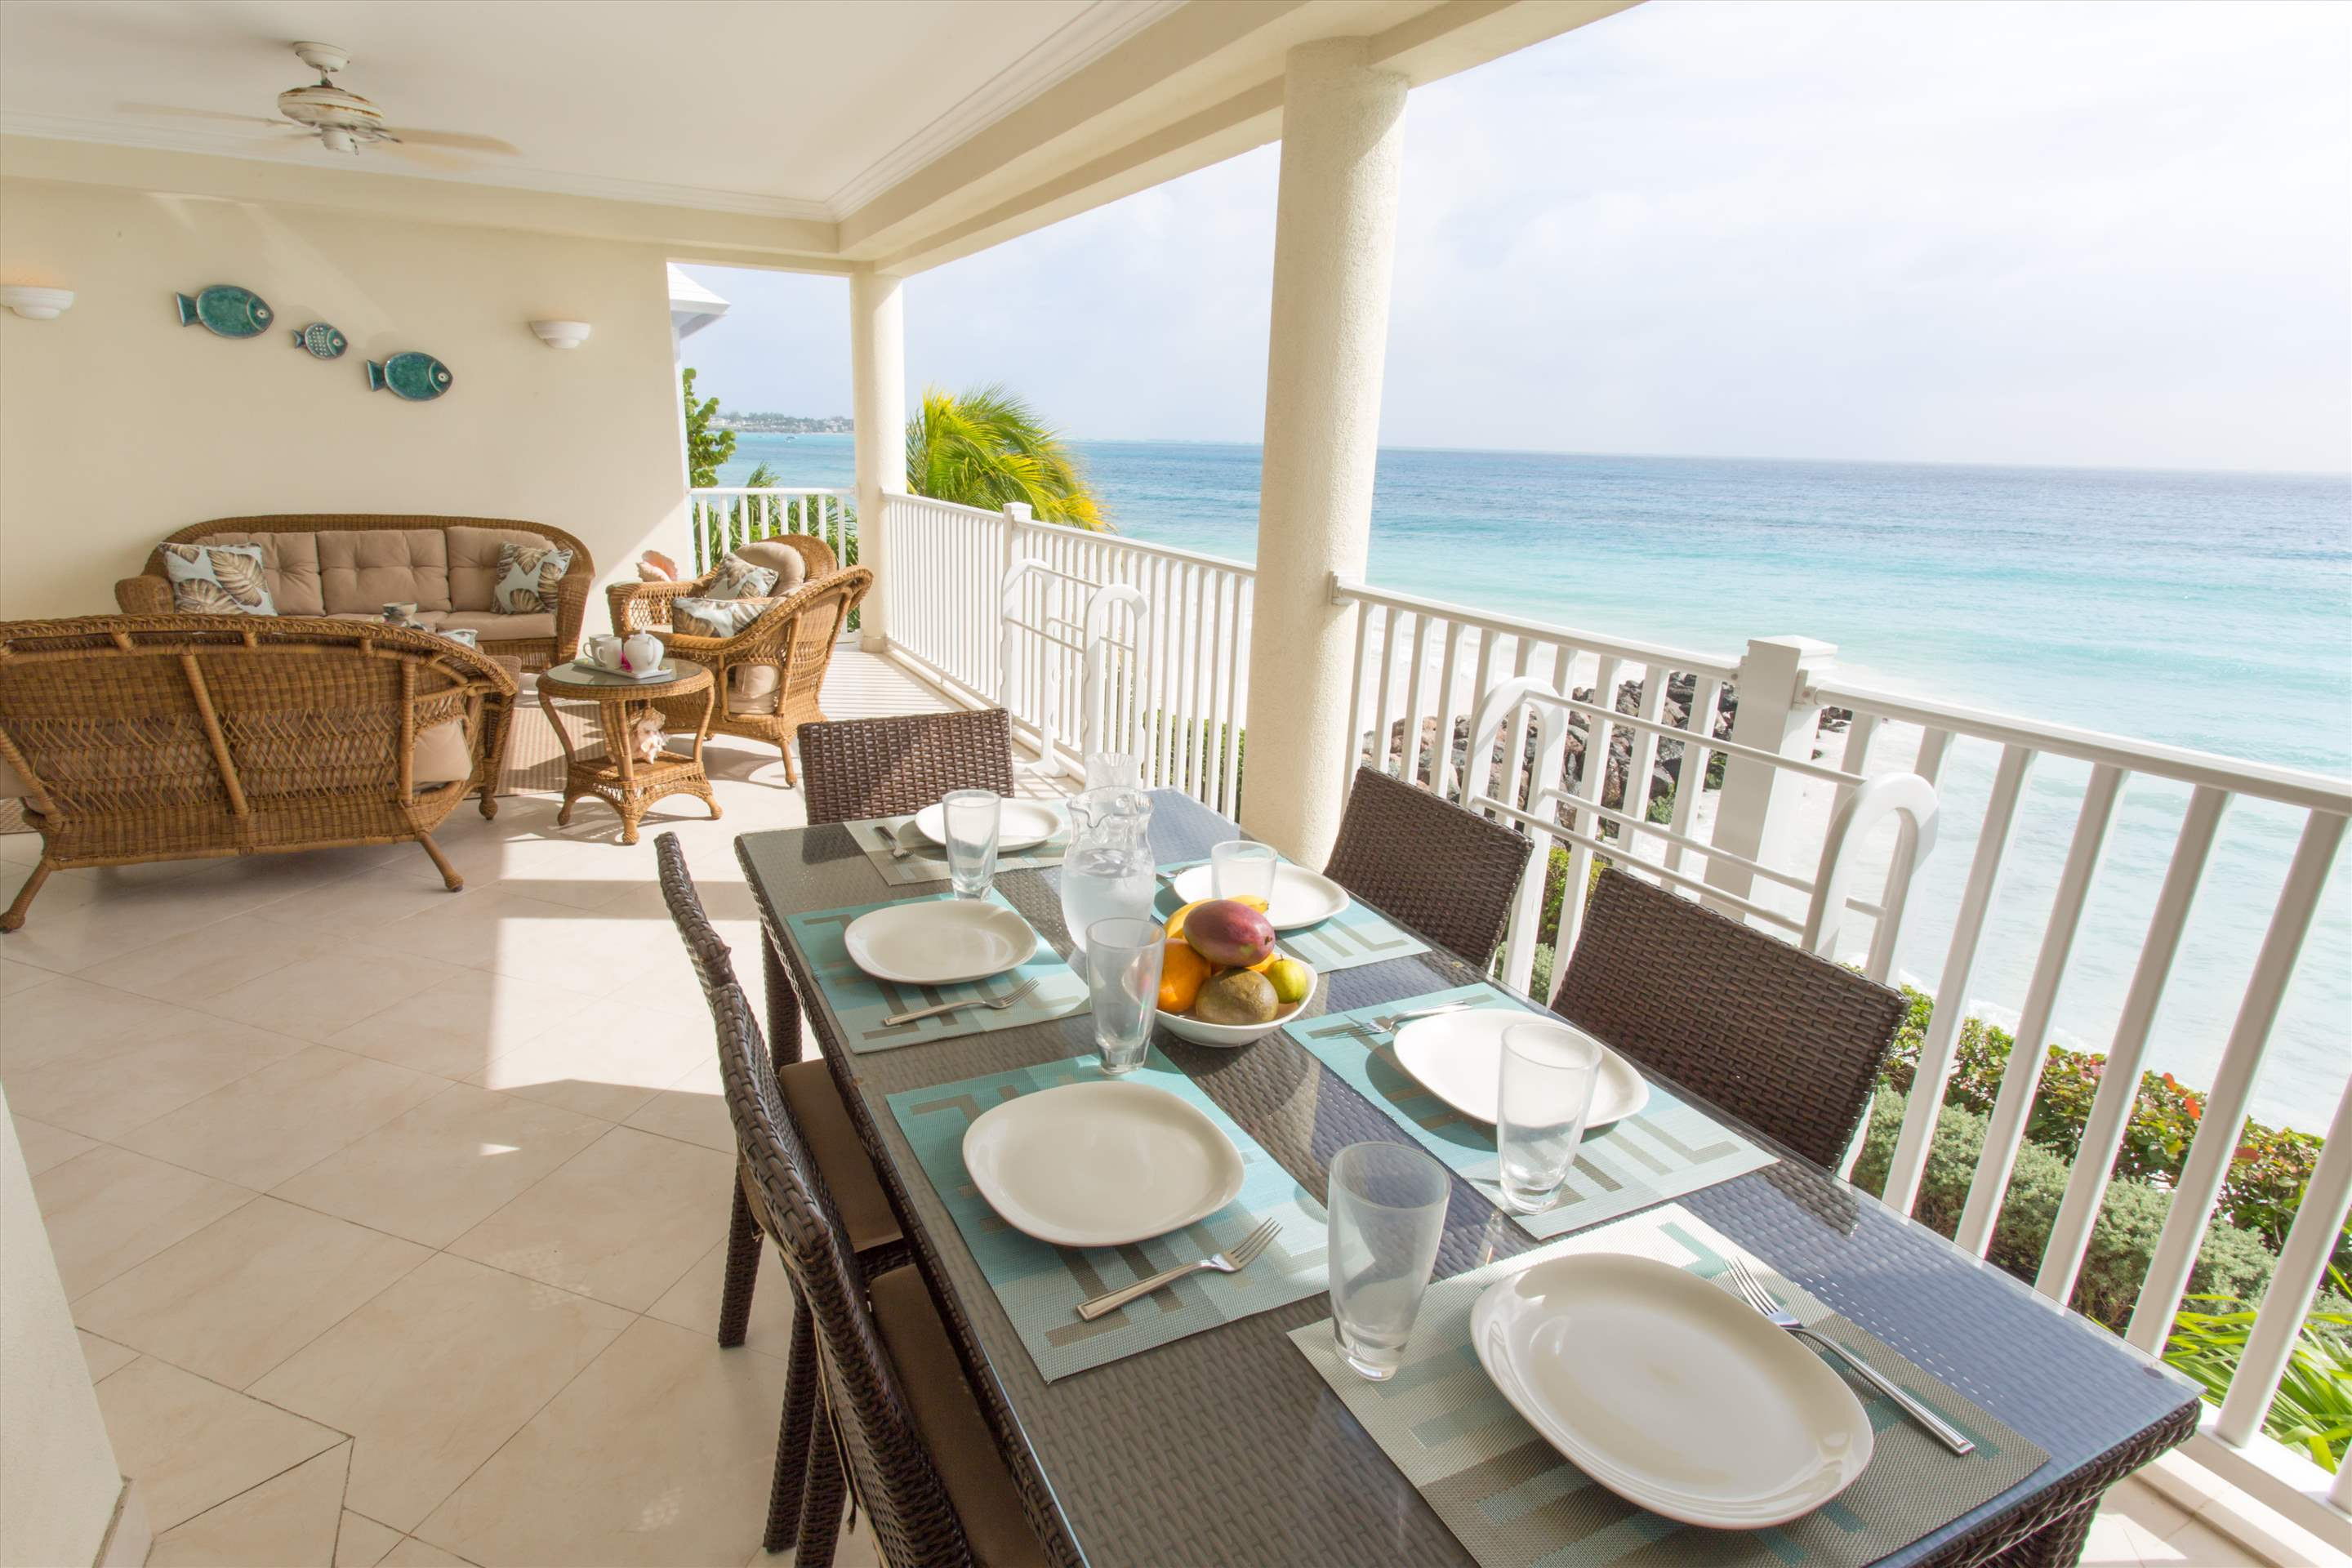 Sandy Hook 21, 2 bedroom, 2 bedroom villa in St. Lawrence Gap & South Coast, Barbados Photo #2